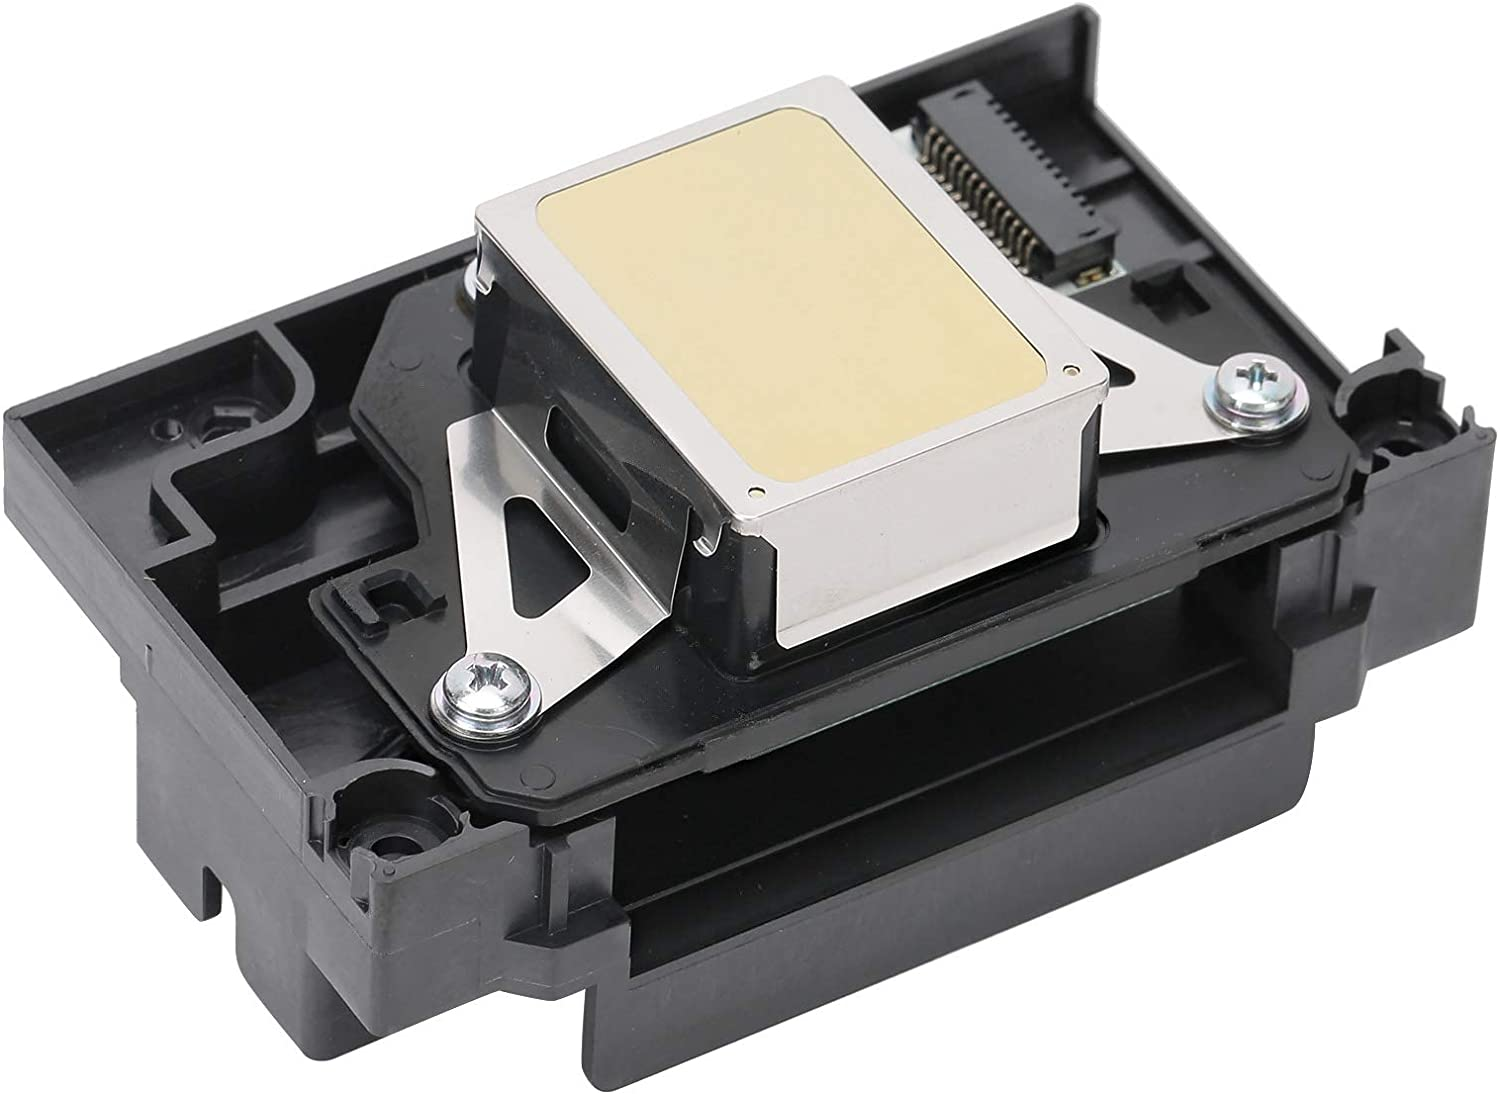 Dilwe1 Durable Printer Head, Replacement Accessory for L801 L800 L805 TX650 R290 T50 R330, Easy to Install (L800)